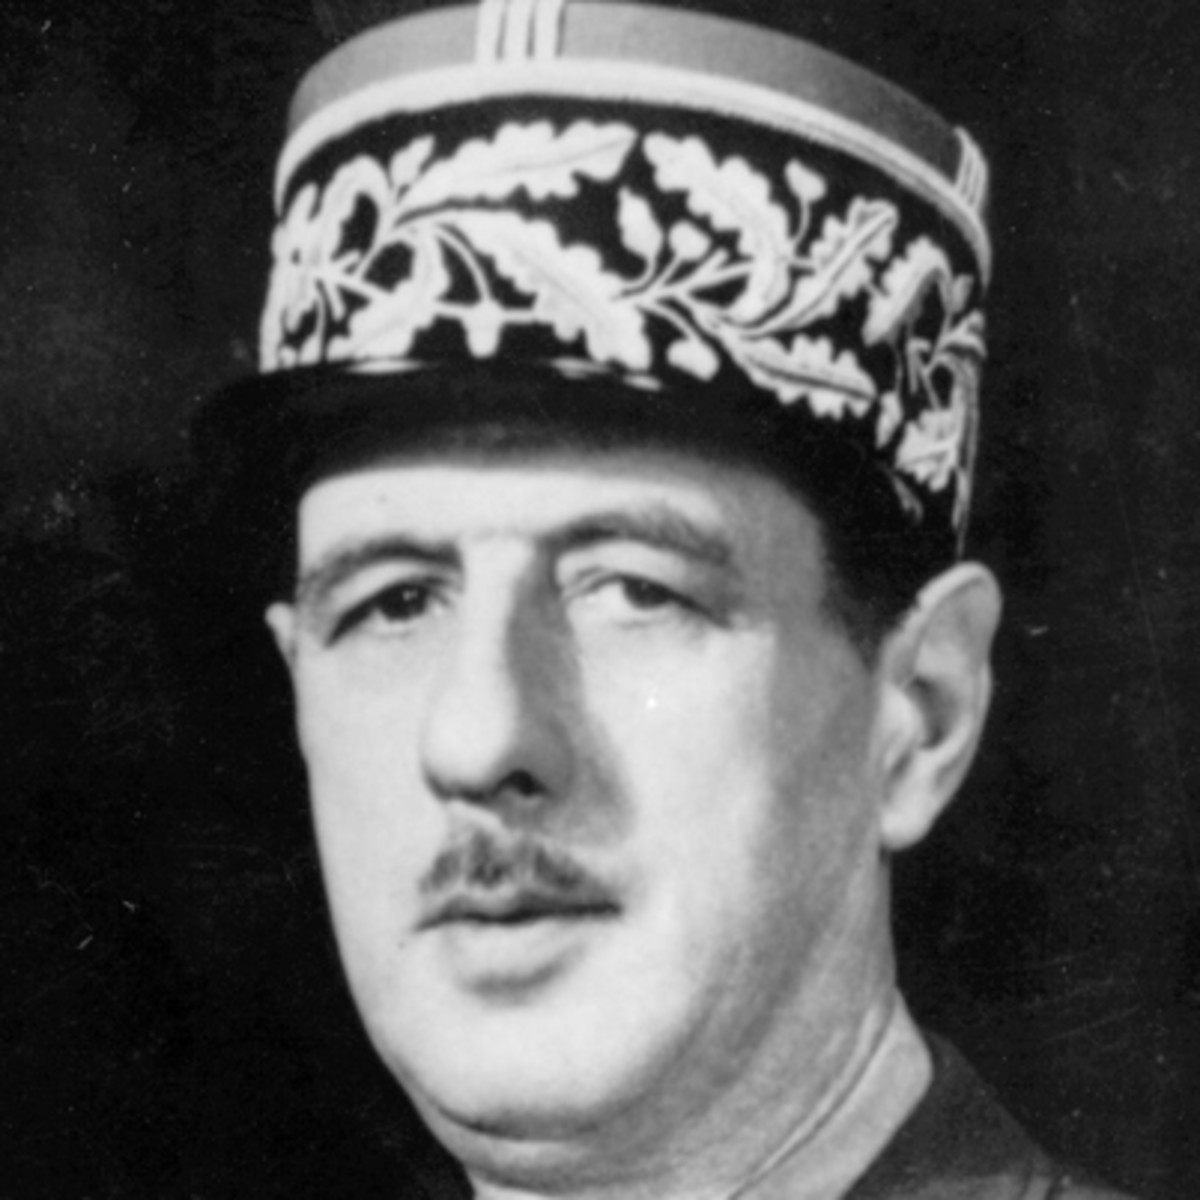 a biography of charles de gualle a leader of france during world war ii In wwii he inspired the people of occupied france to fight for their liberation and  led  however, to the surprise of the whole world, french president charles de  gaulle opted for a political  [tags: algeria war independence history essays  france]  on may 23, 2004, the charles de gaulle airport in paris, france,  whisked.